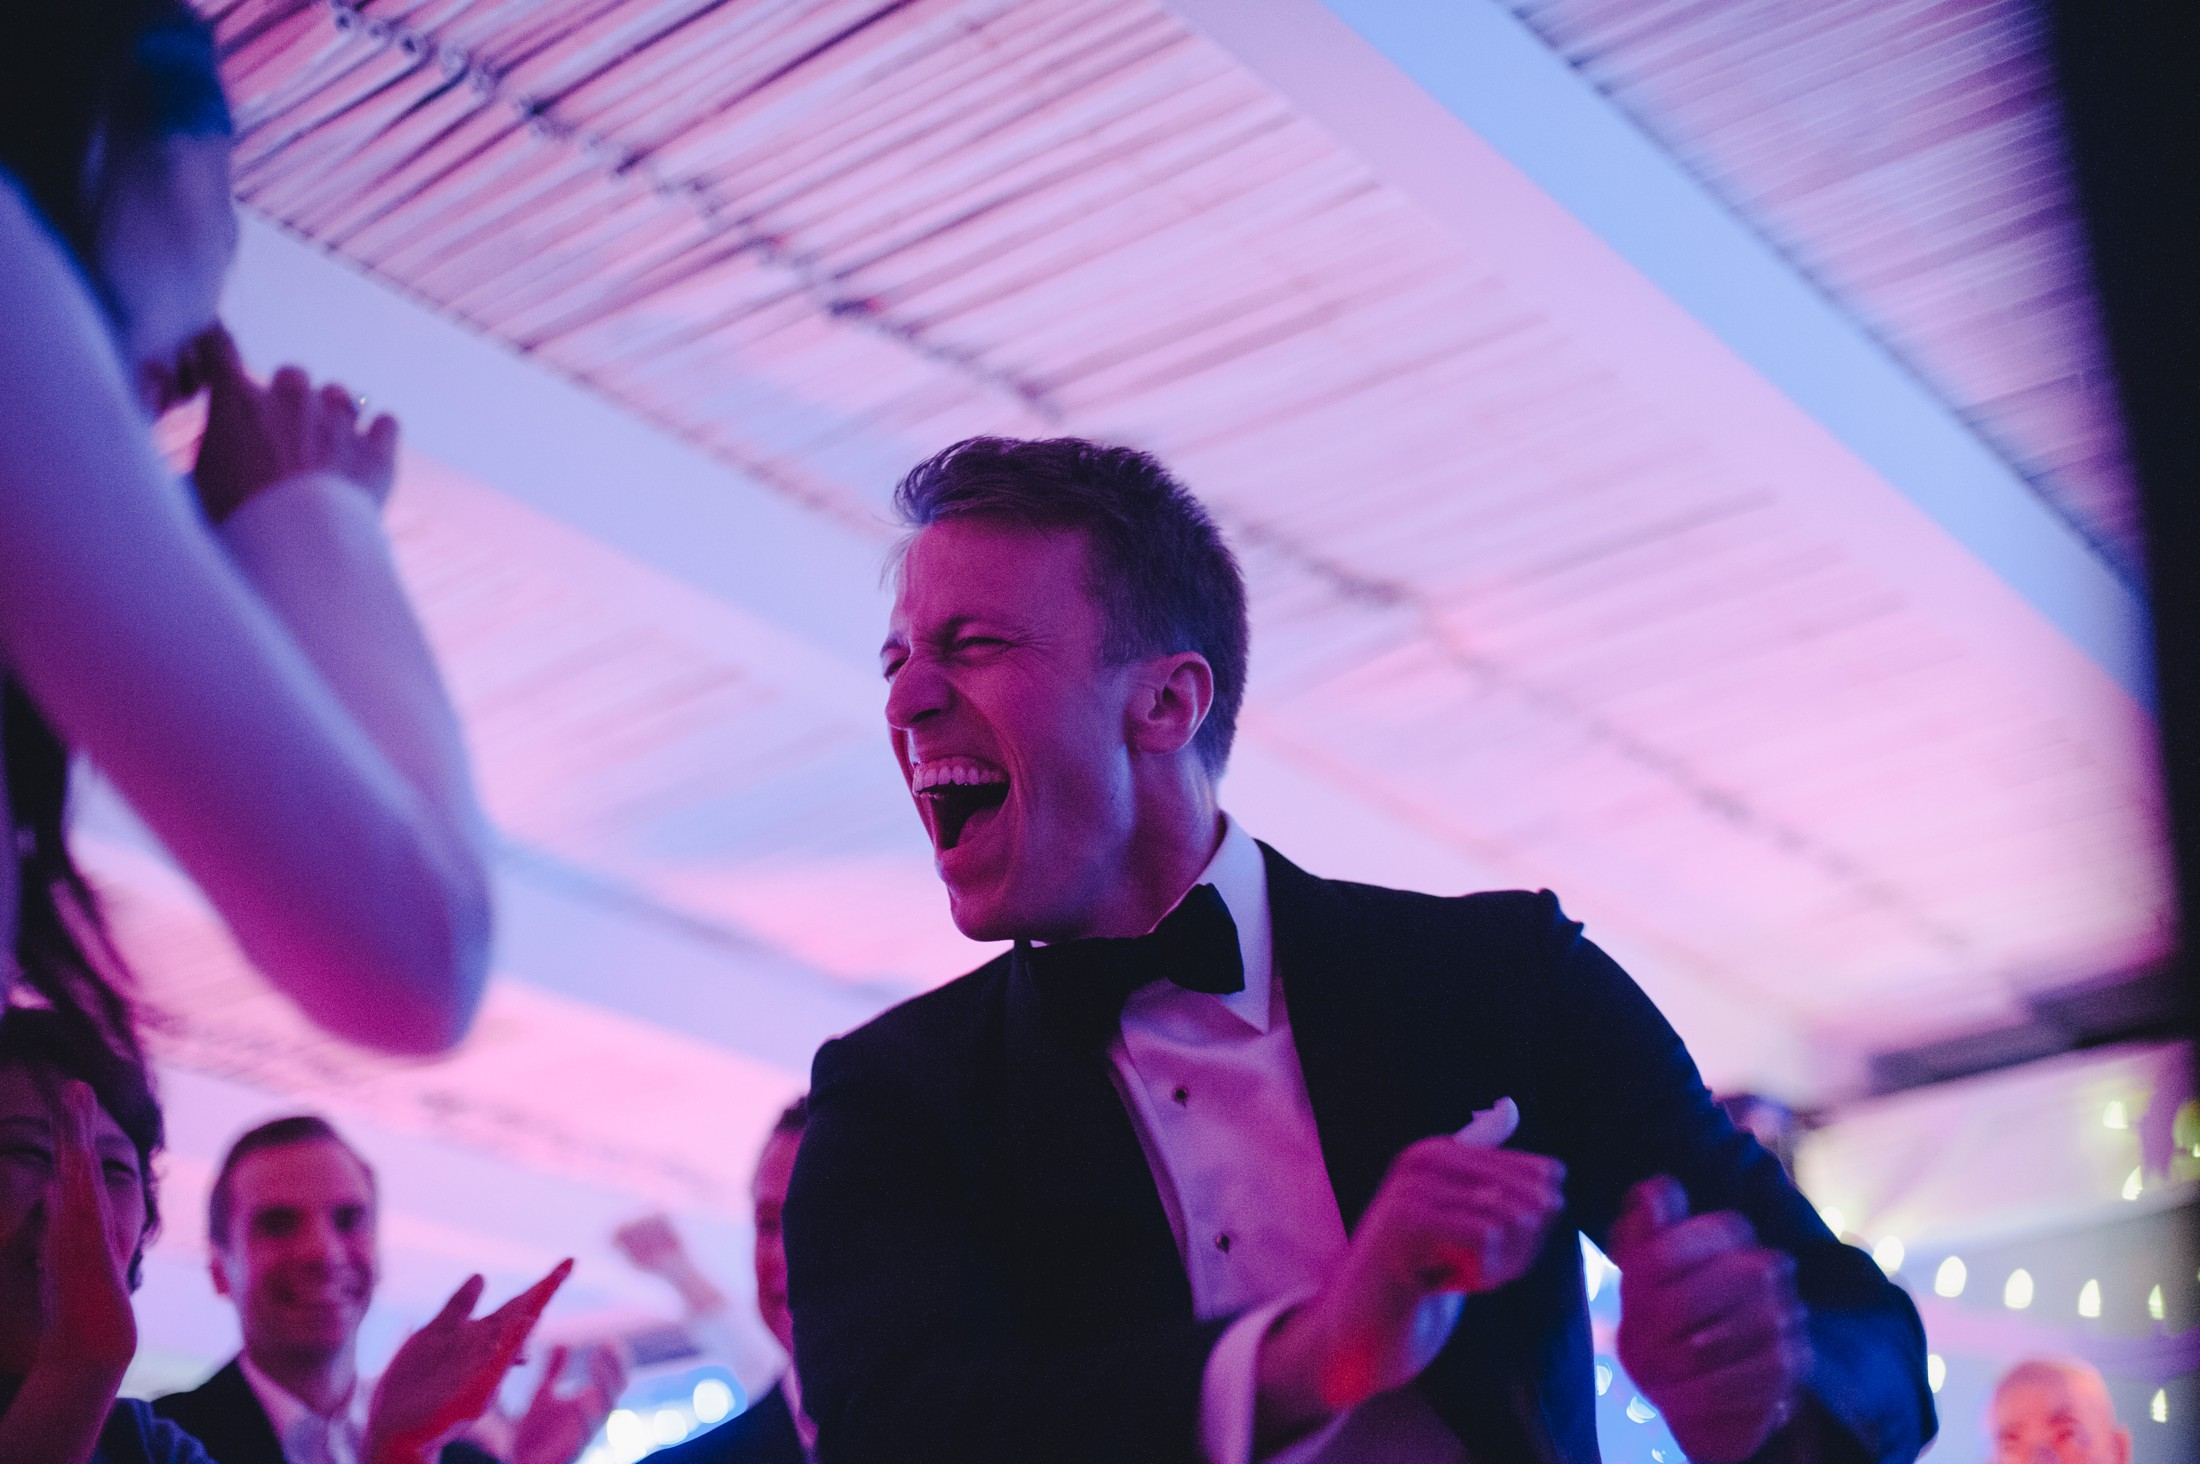 the groom's dancing